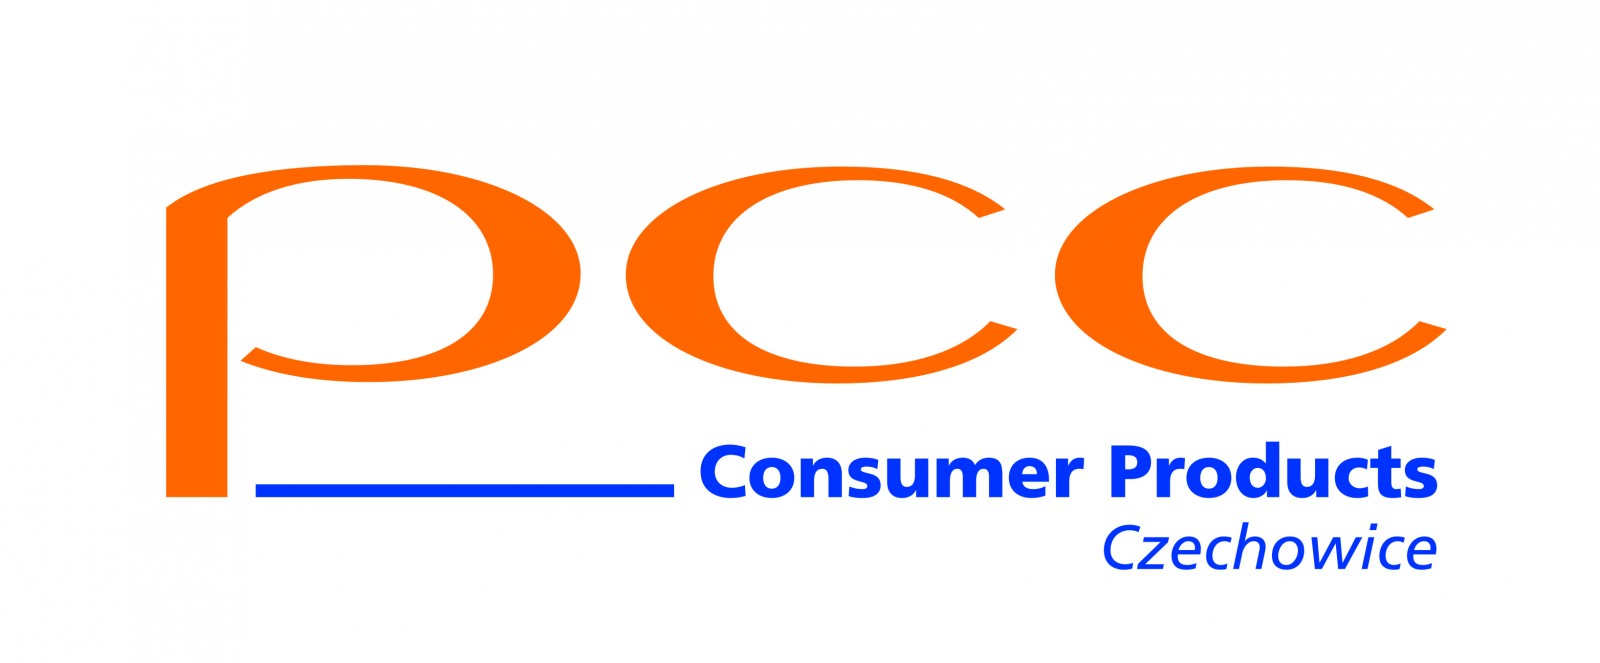 PCC Consumer Products Czechowice S.A.